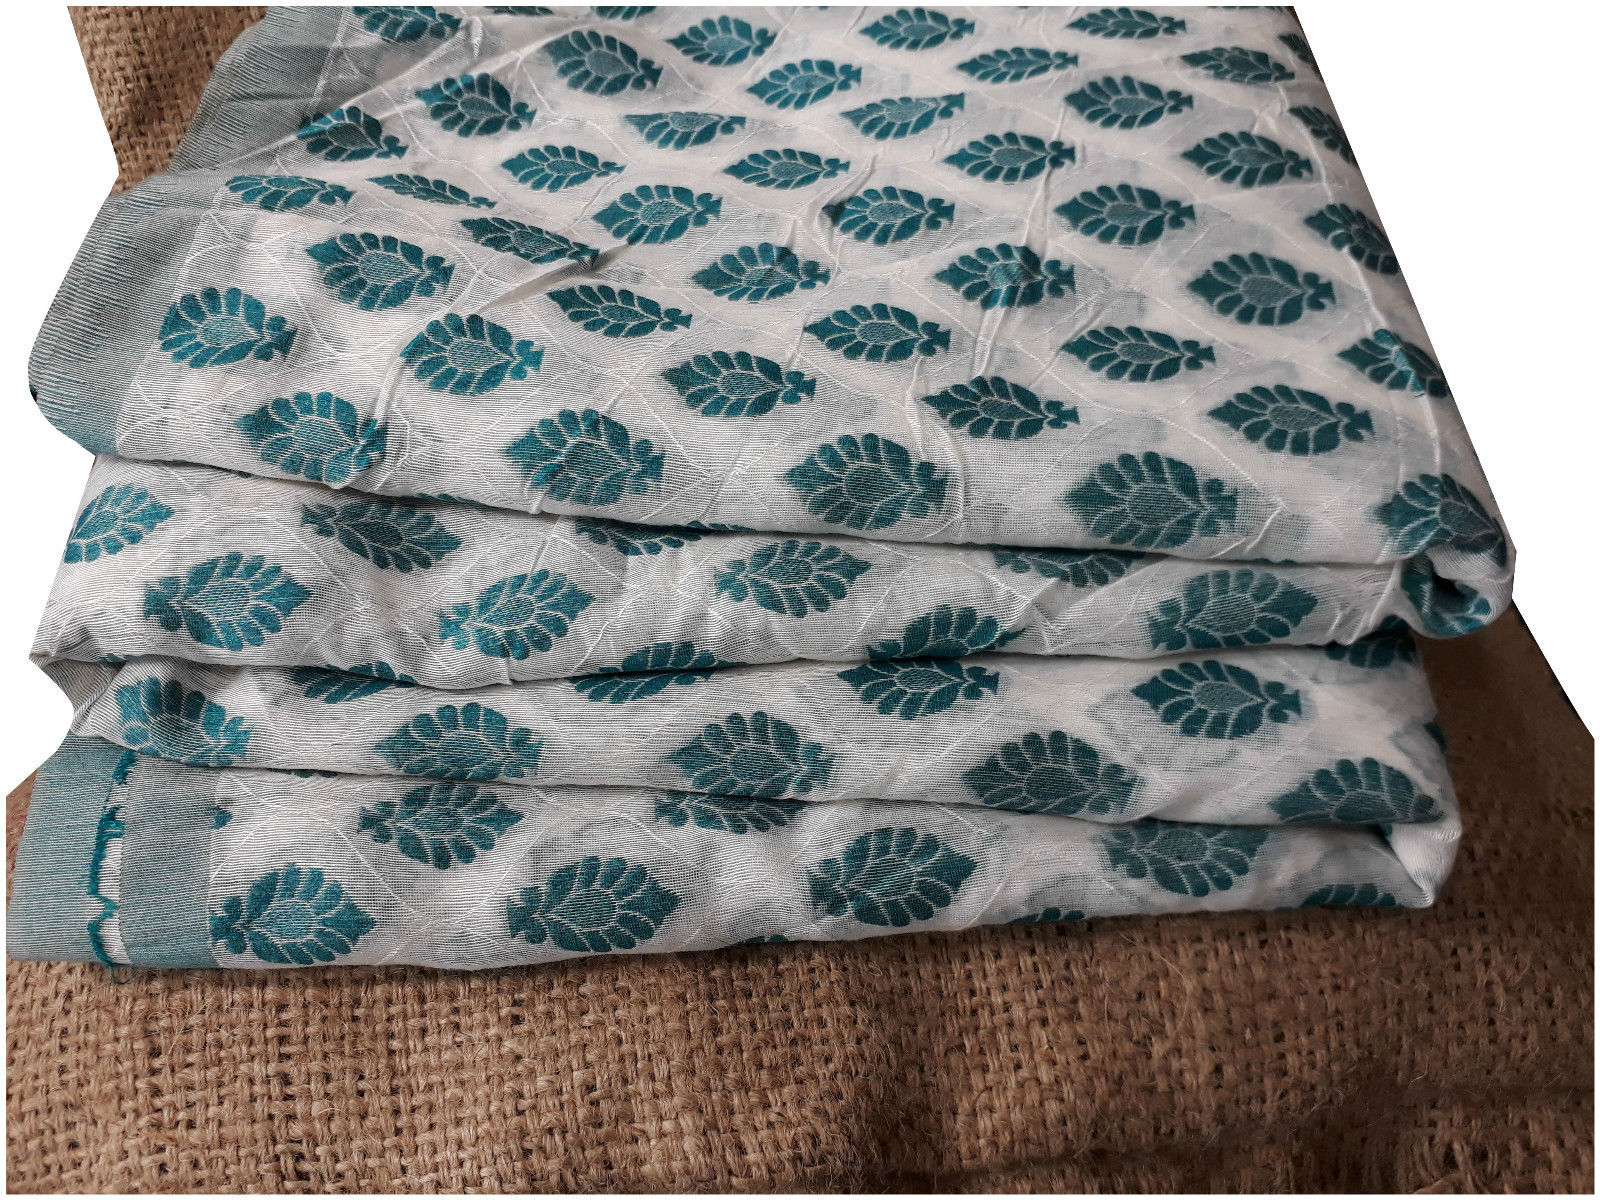 ethnic fabric online indian material online Embroidered, Jaquard Cotton Off White, Green 49 inches Wide 1794